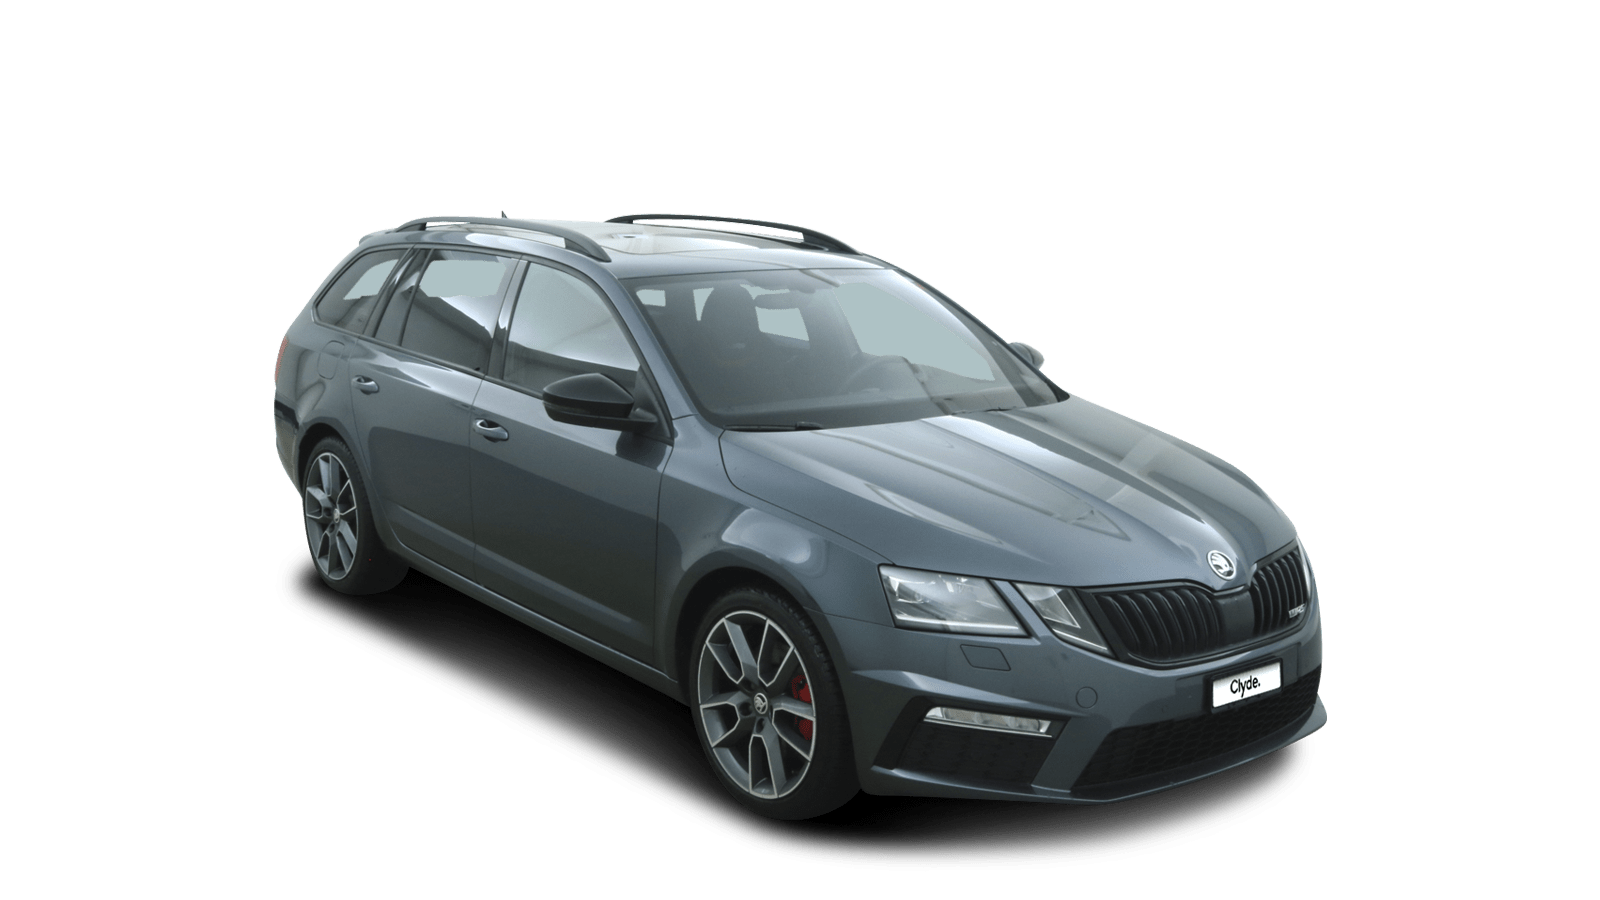 ŠKODA OCTAVIA COMBI RS Grey front - Clyde car subscription